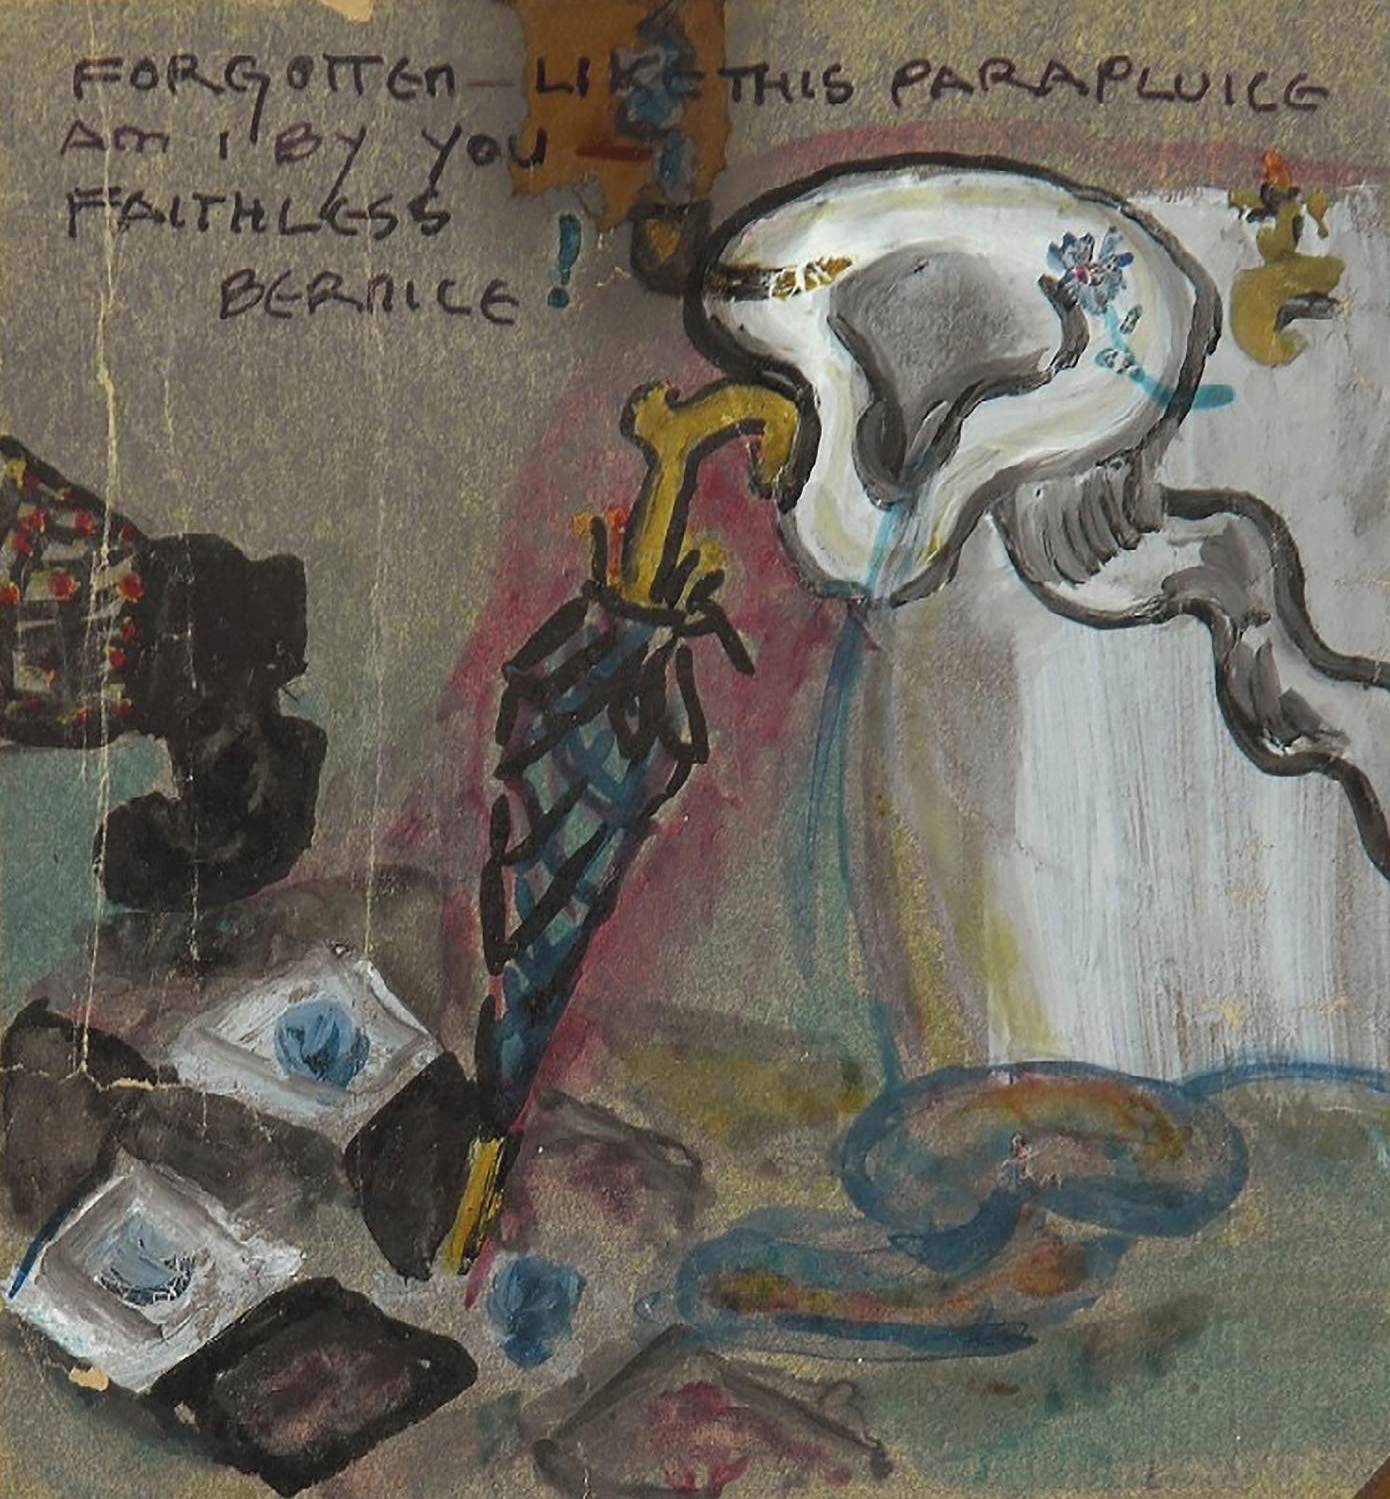 Elsa von Freytag-Loringhoven (1874-1927), Forgotten Like this Parapluice Am I by You – Faithless Bernice, 1923-1924, gouache on paper, 13.